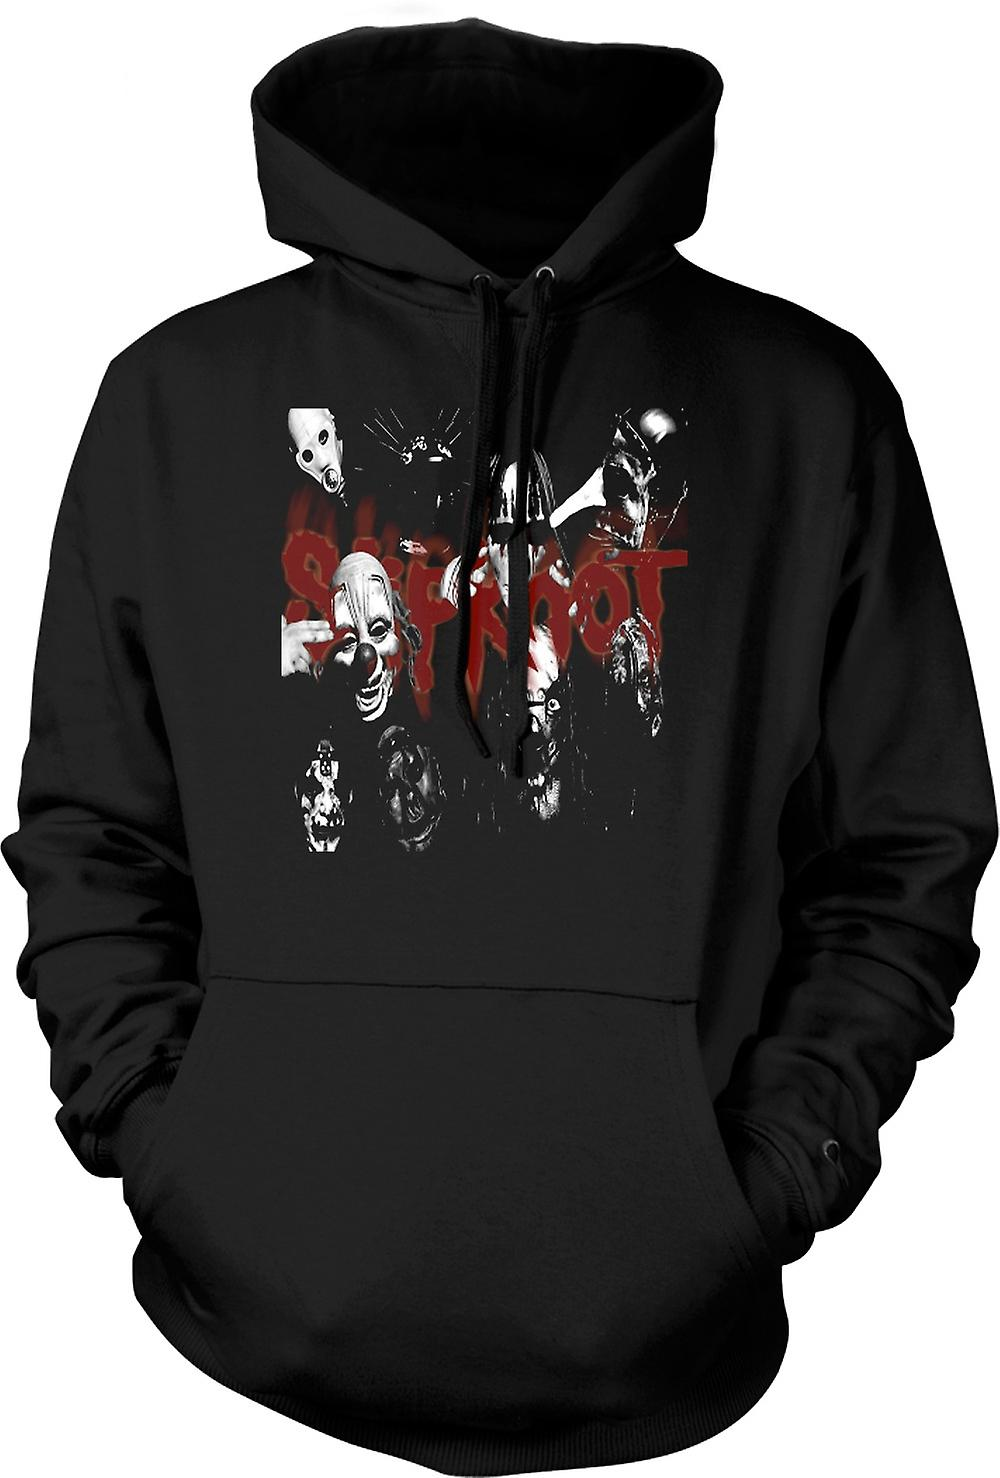 Kids Hoodie - Slipknot - Heavy Metal Band